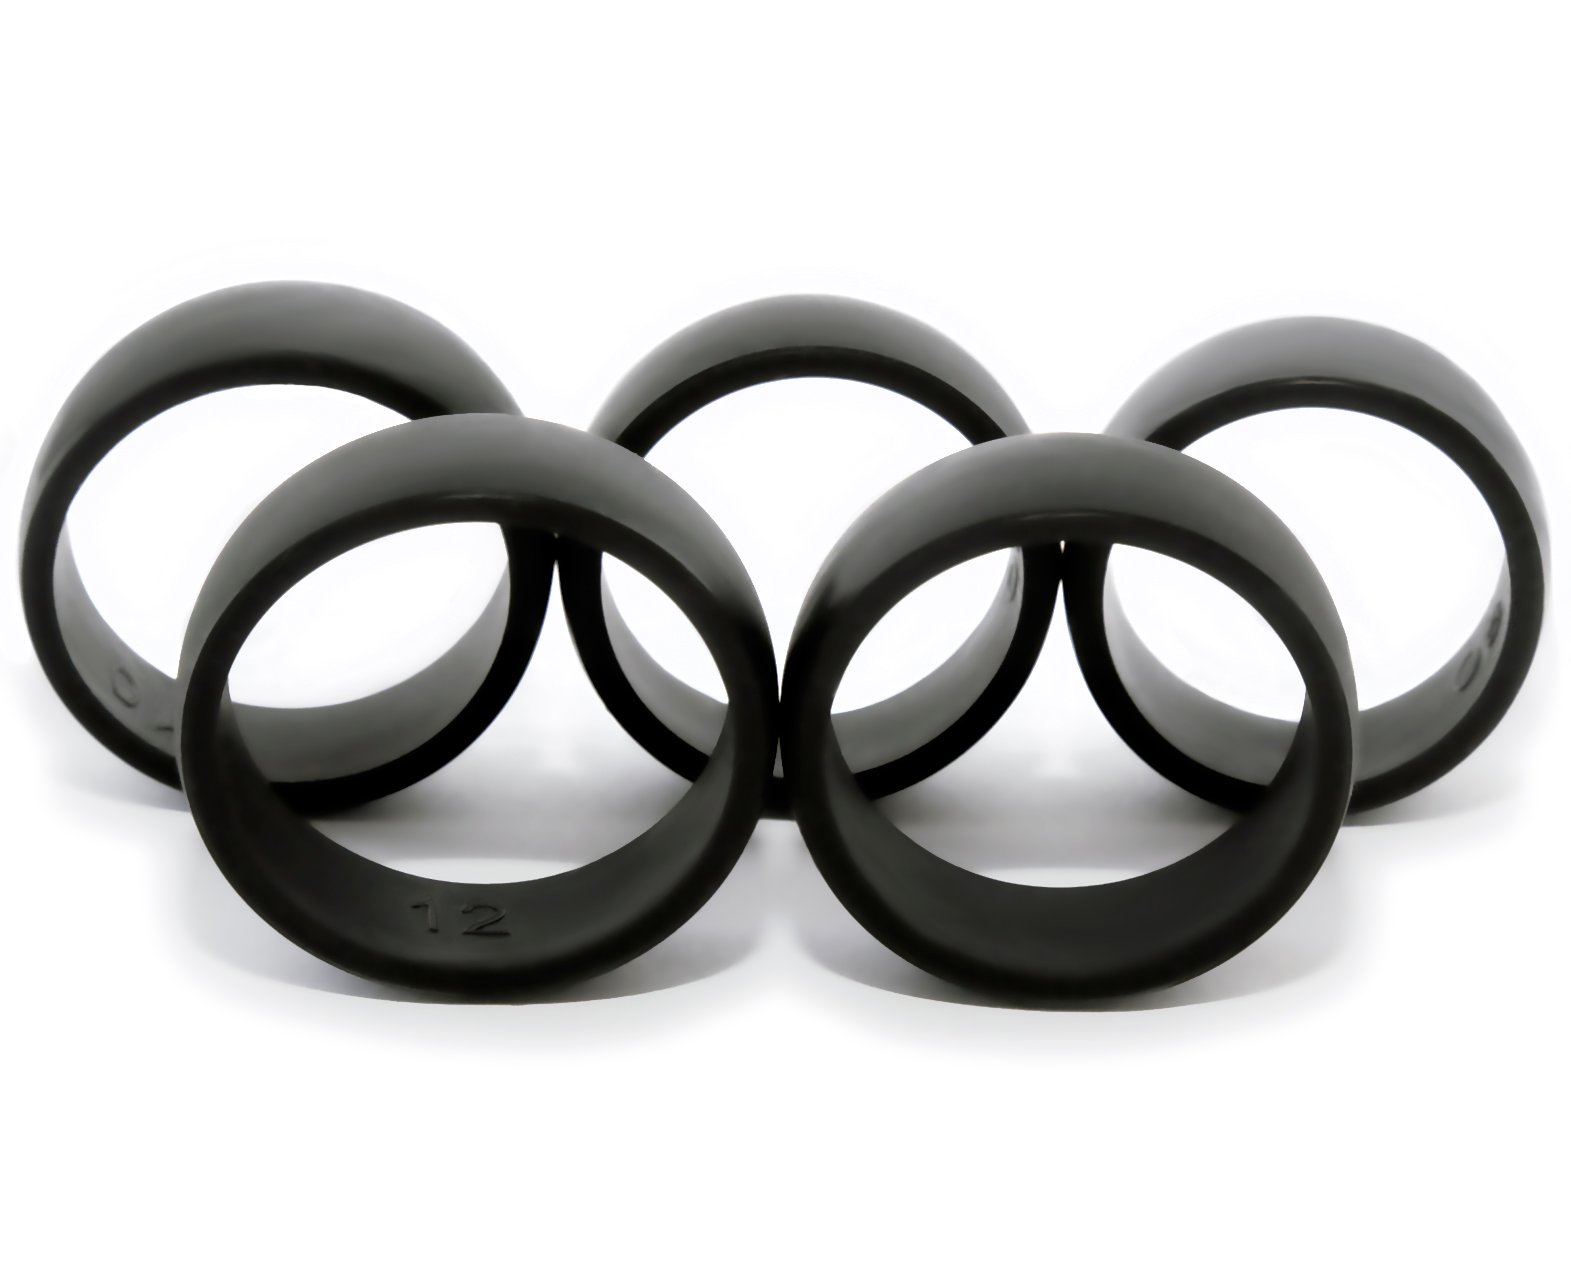 Best Of Silicone Wedding Ring Nz